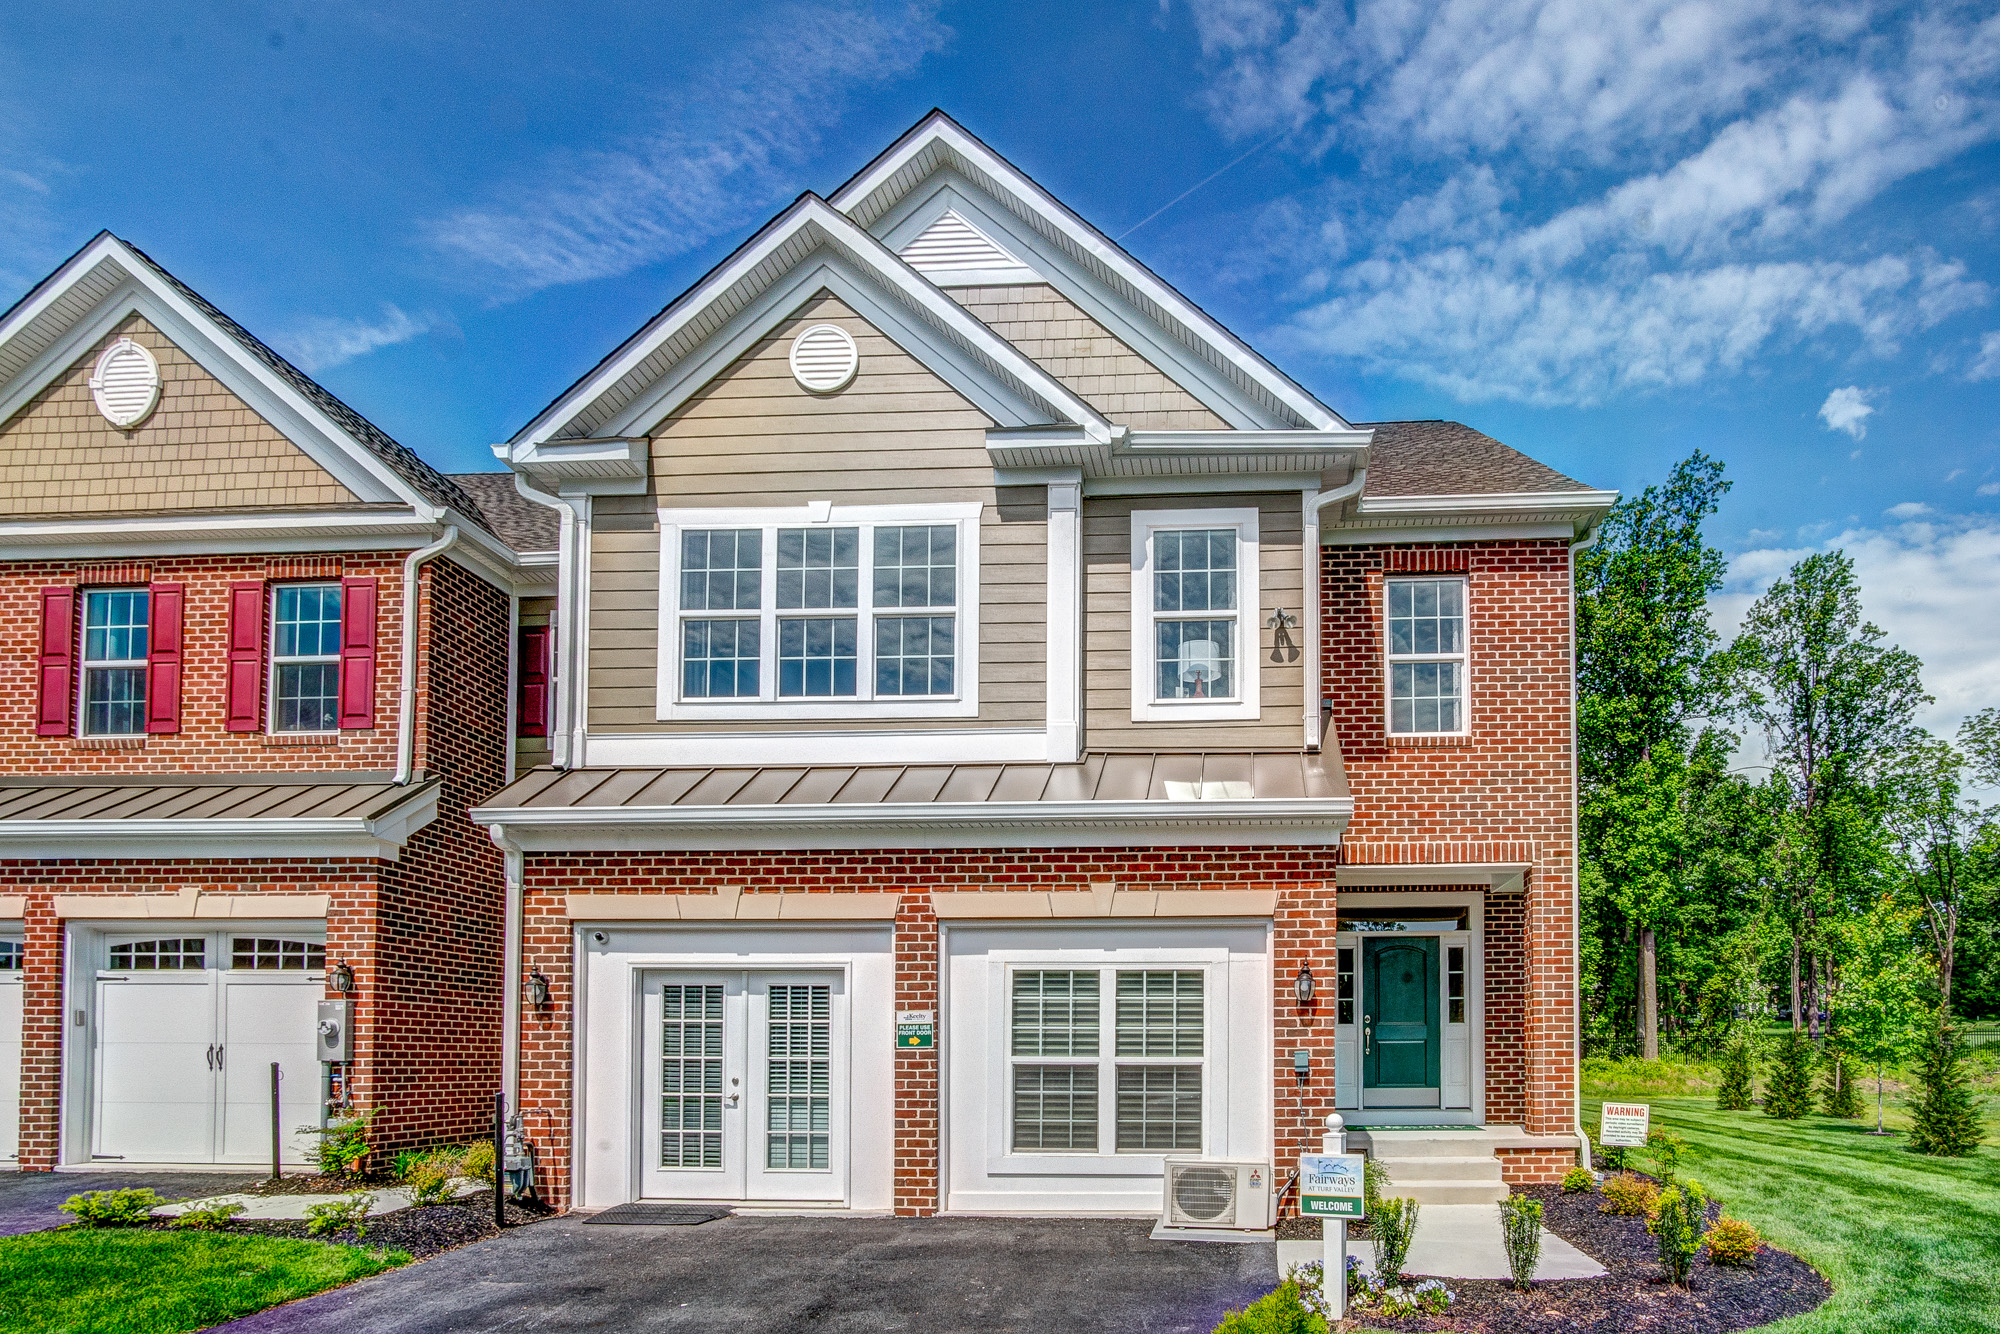 New Town Homes in Ellicott City, Maryland